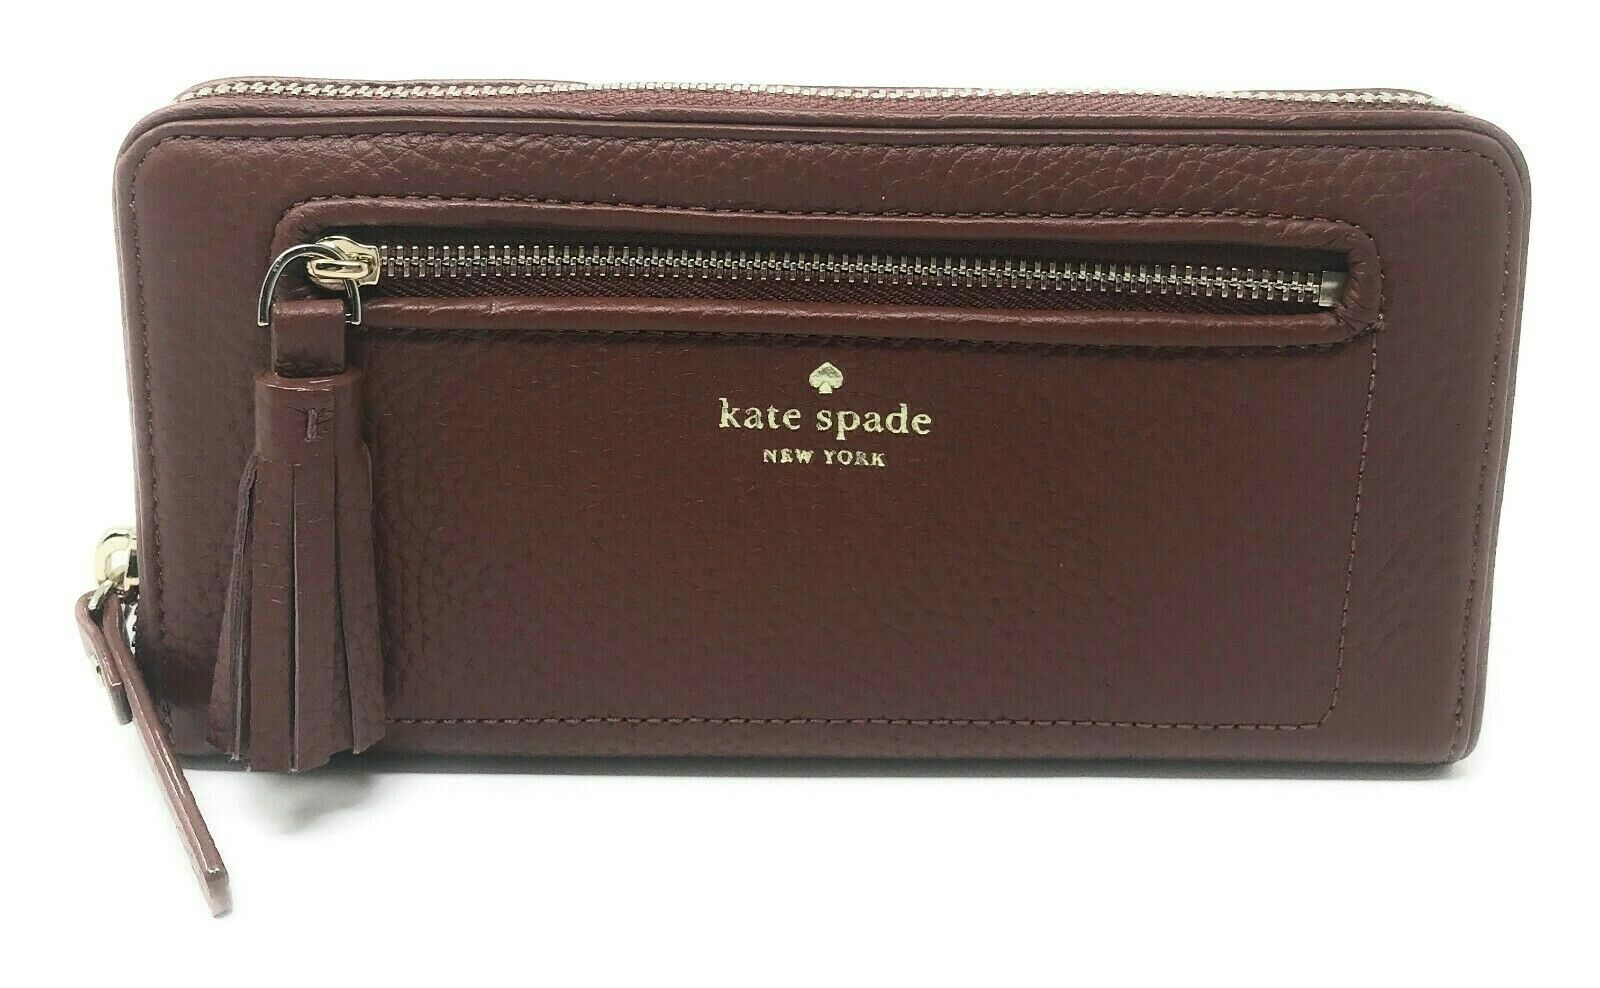 Kate Spade Chester Street Neda Port Brown Zip Around Wallet WLRU2654 $189